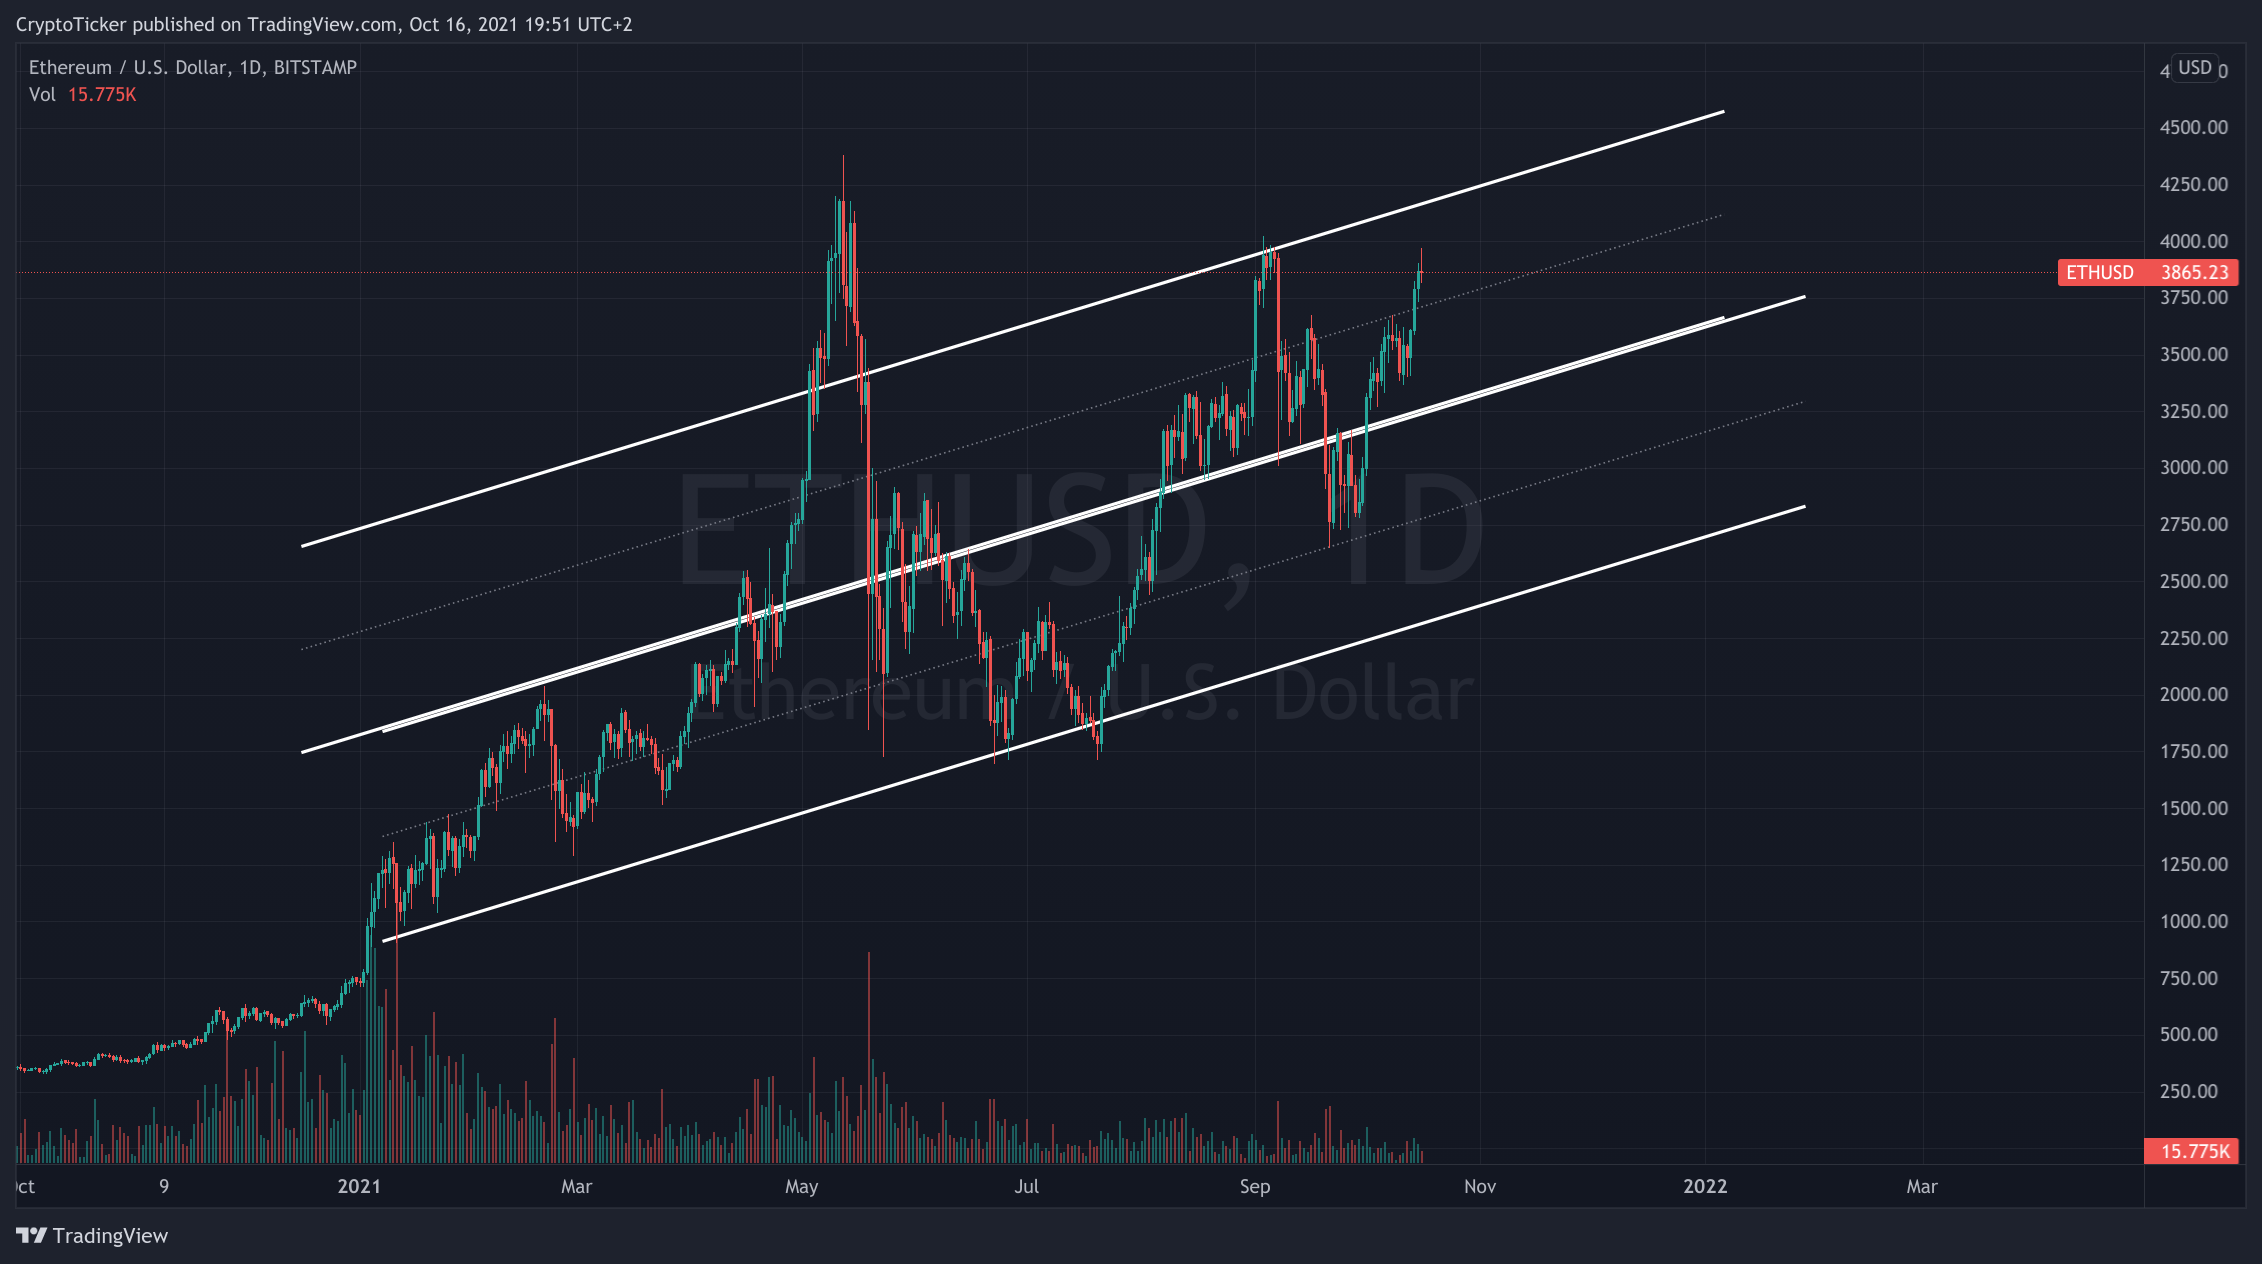 ETH/USD 1-day chart showing the uptrend of Ether